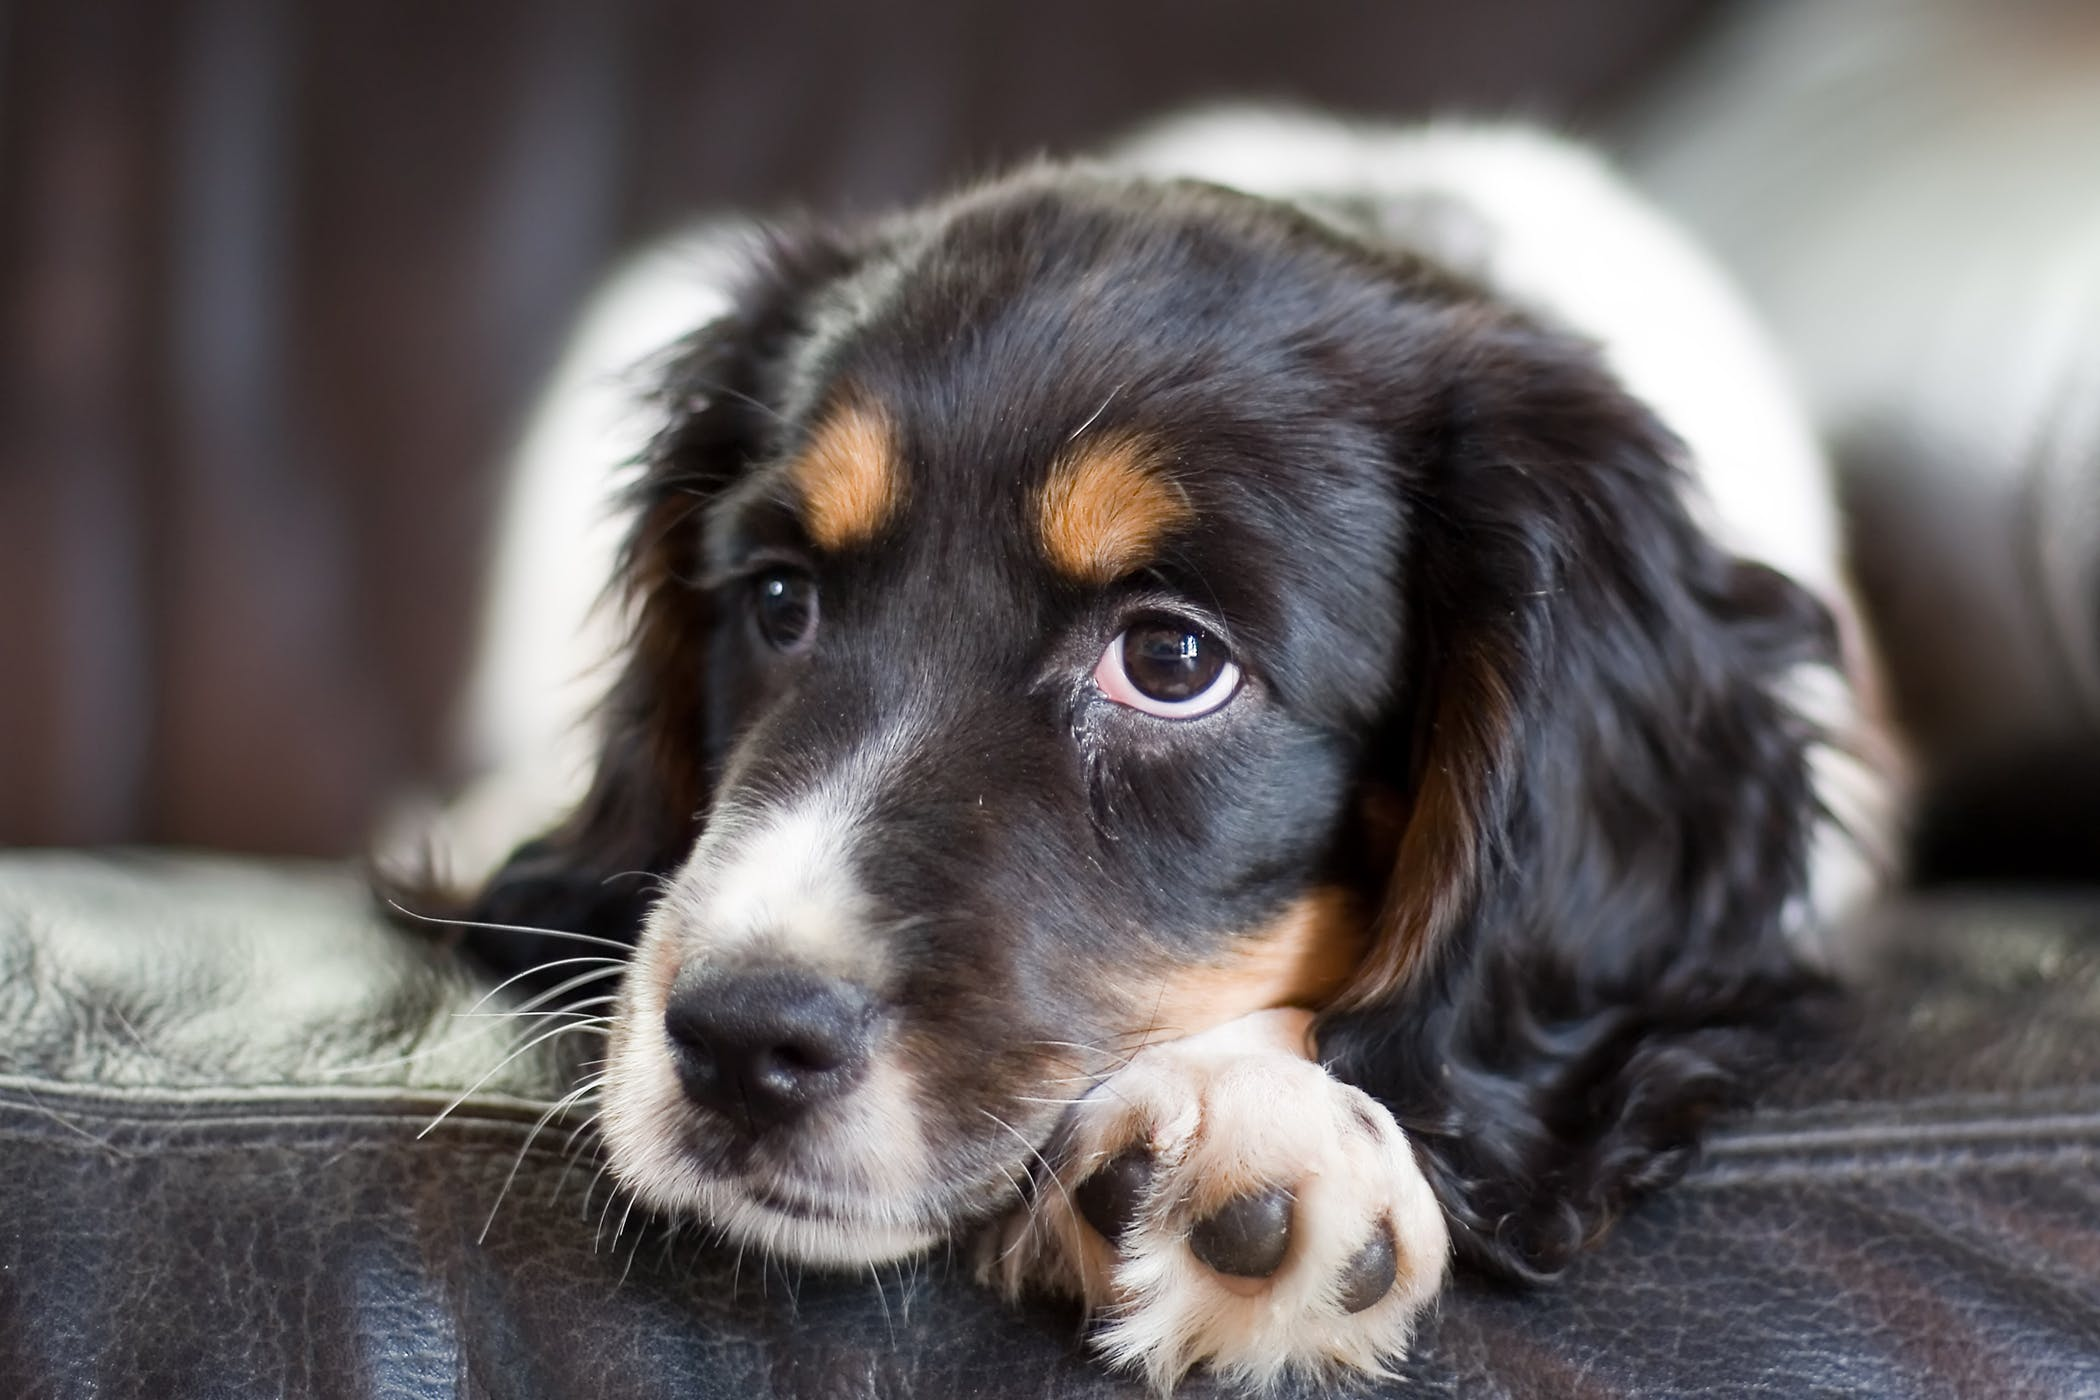 dog dry heaving - things you should know